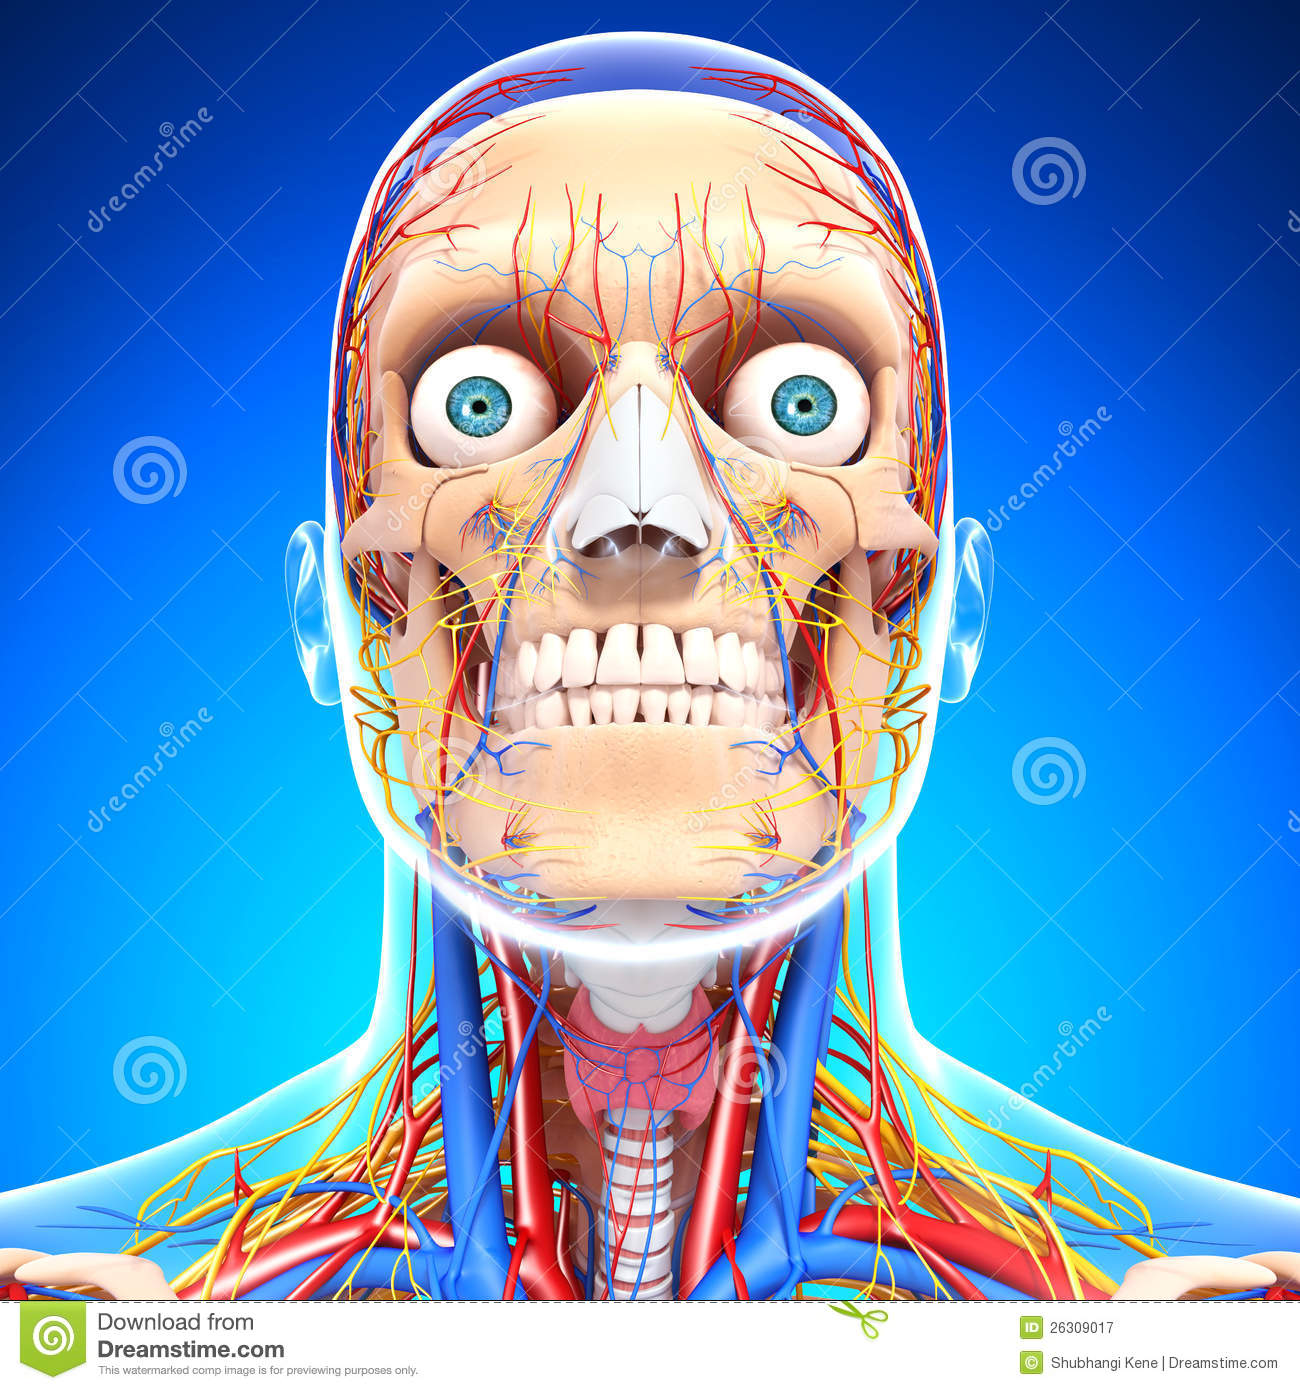 Maxresdefault as well Circulatory Nervous System Blue Eyes additionally Voice Generation besides Chordae Tendineae Function also The Human Body Worksheets X. on human body nervous system diagram